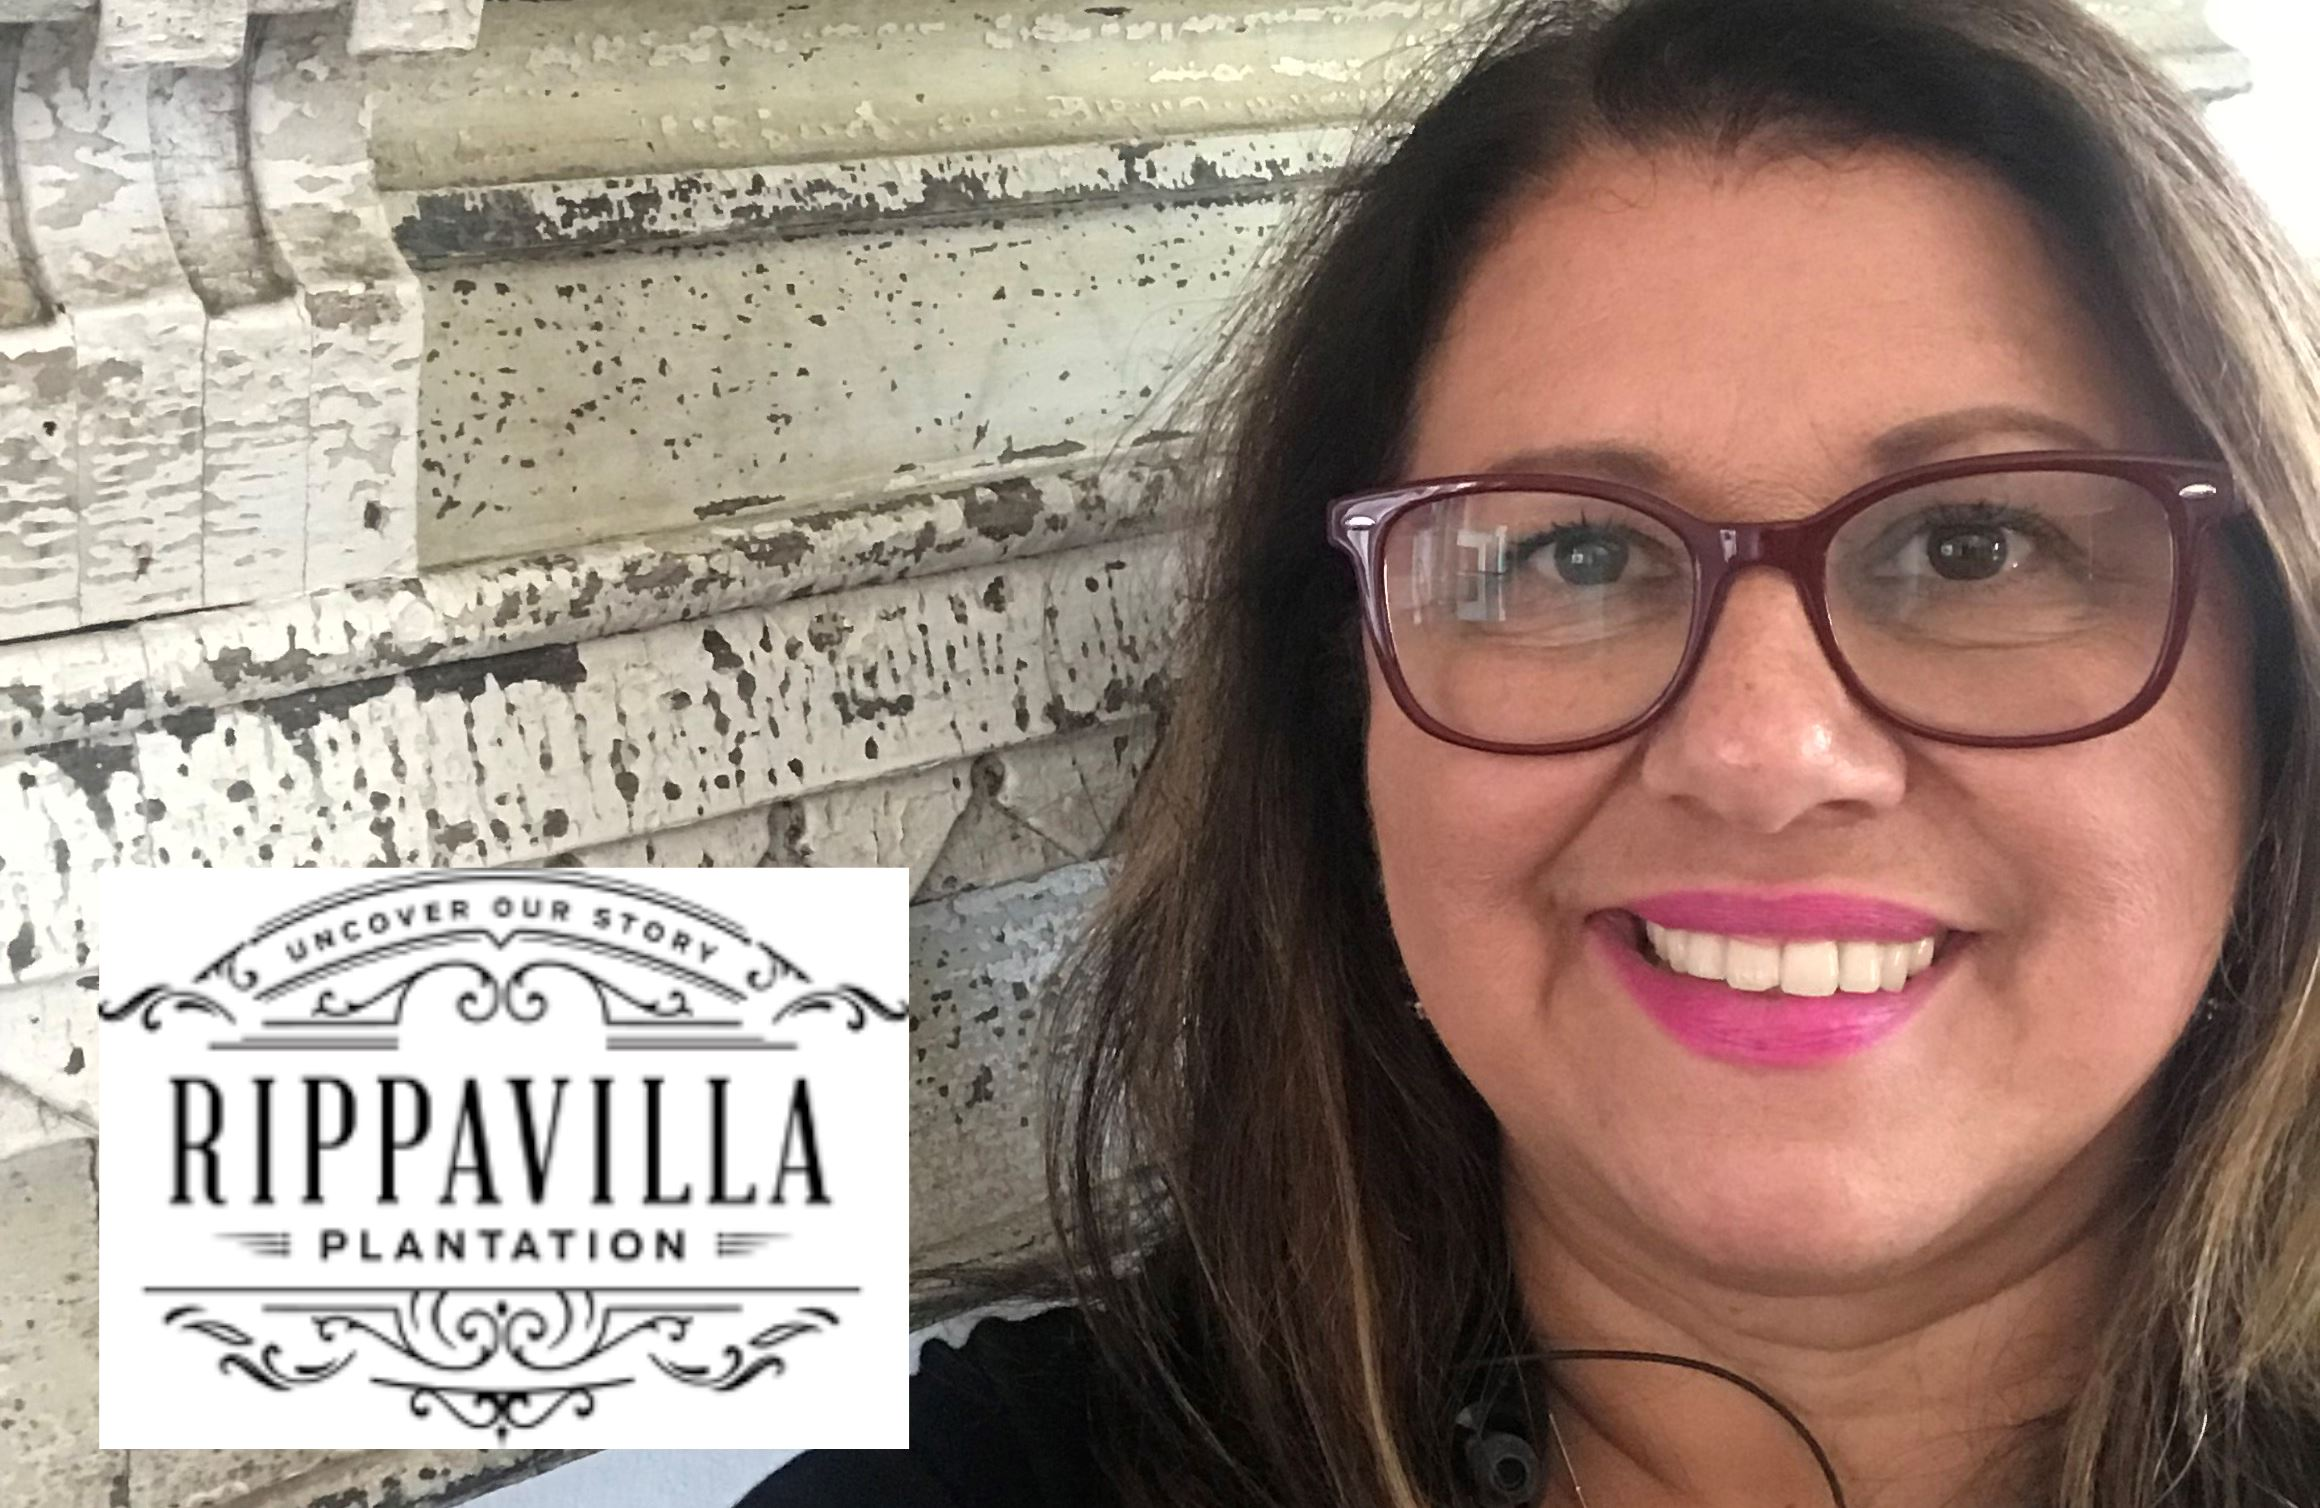 Pat Bearden named Rippavilla executive director